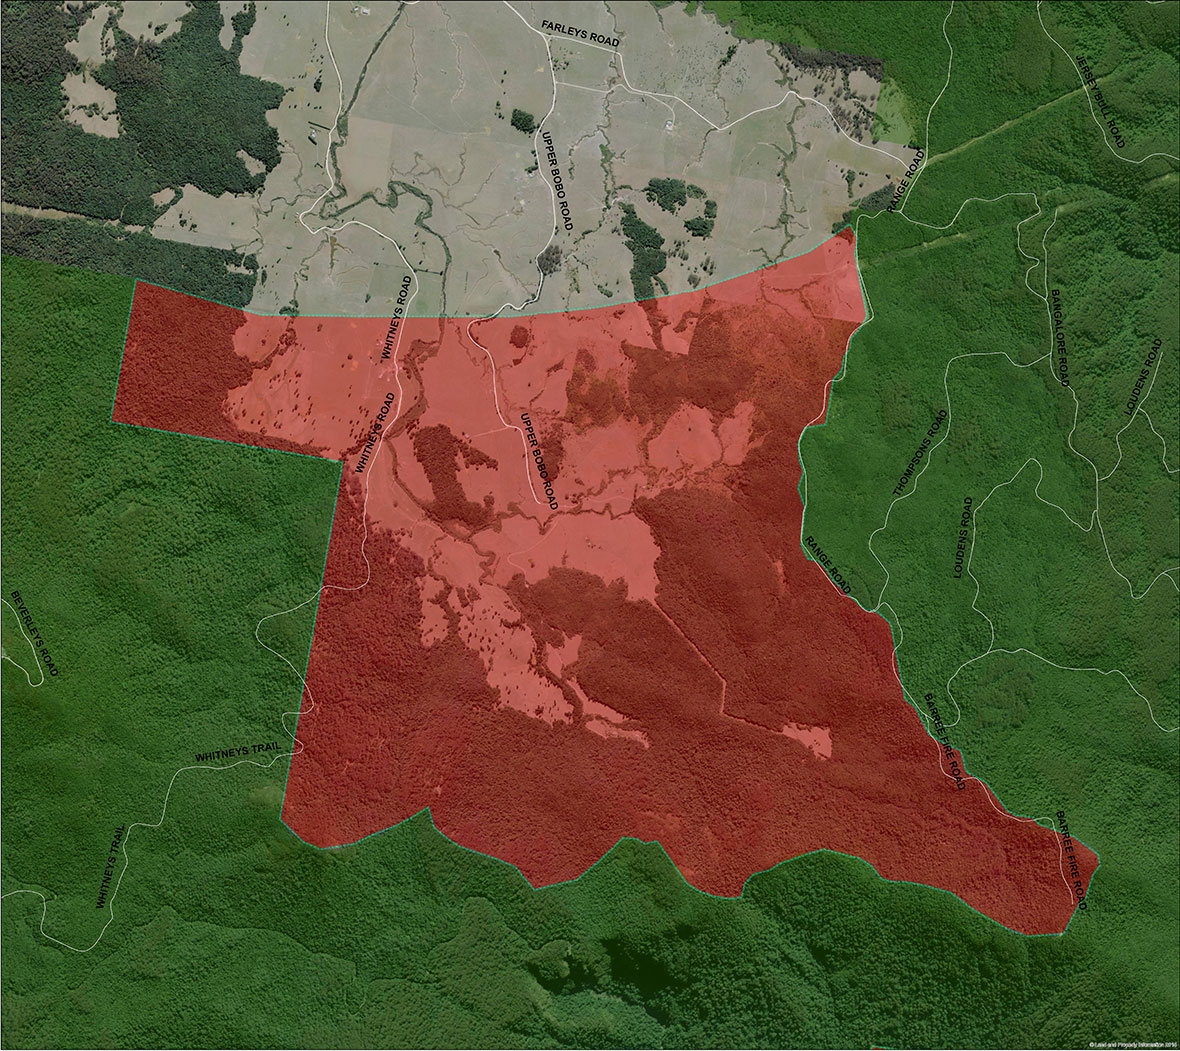 map-dorrigo-bindarri-connection